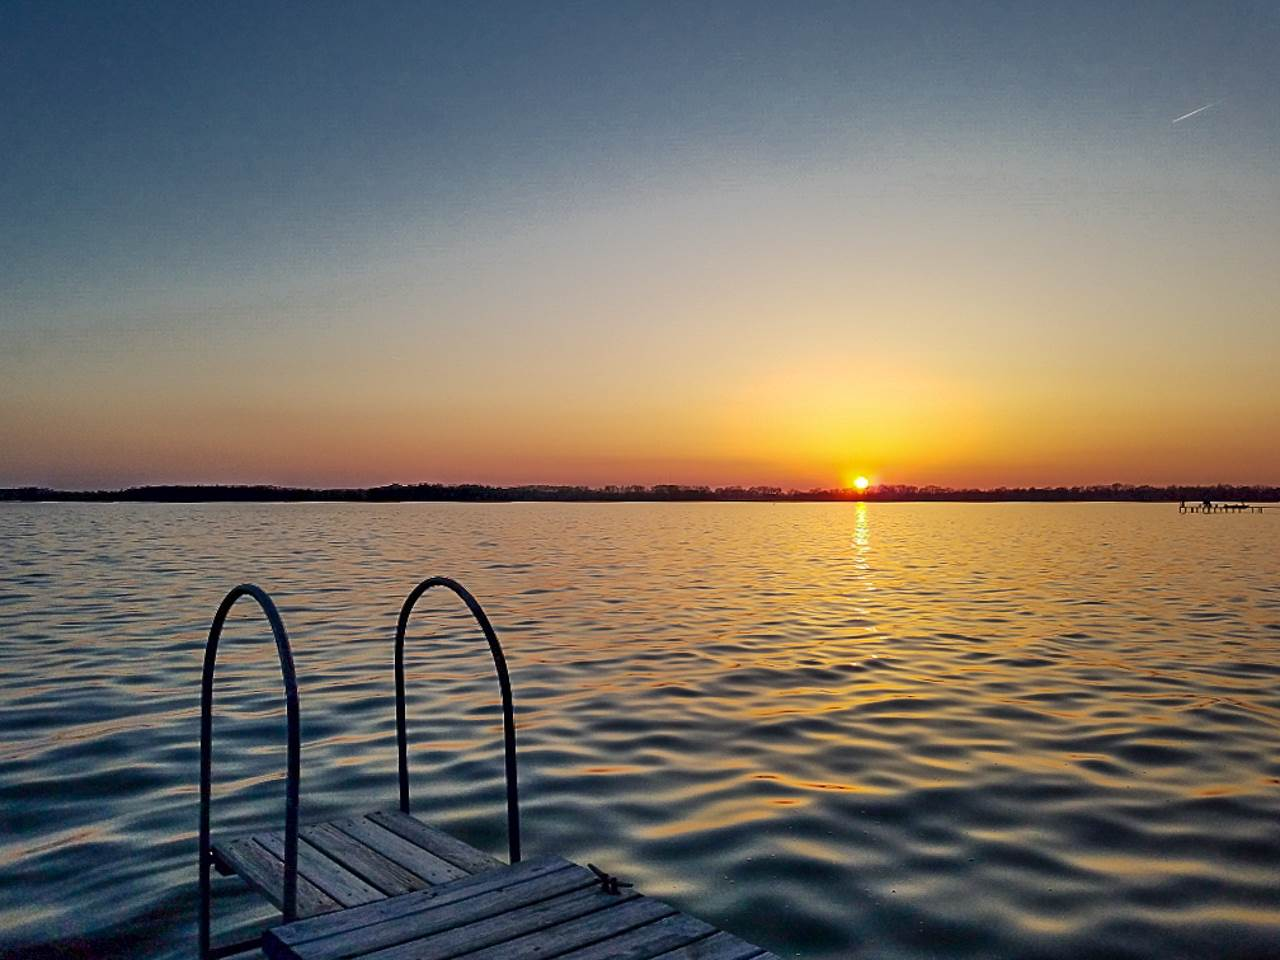 Imagine warm summer nights sitting on the edge of the pier, feet dangling in the cool Lake Waubesa waters while watching the brilliant colors of the sunset unfold before you. Ahhhh. What a wonderful, peaceful place to be! This sprawling 4 bed/3 bath home enjoys beautiful views year-round. Winter sunsets can be enjoyed from the cozy living room while basking in the warmth of the wood burning fireplace. The main floor also includes a large office/flex room, formal dining room, large kitchen w/ all new appliances, and laundry. The serene upper level has a large family/rec room and four bedrooms, including the spacious primary suite with lake views, a large bath w/jetted tub, + walk-in closet. Pier and boat lift included.